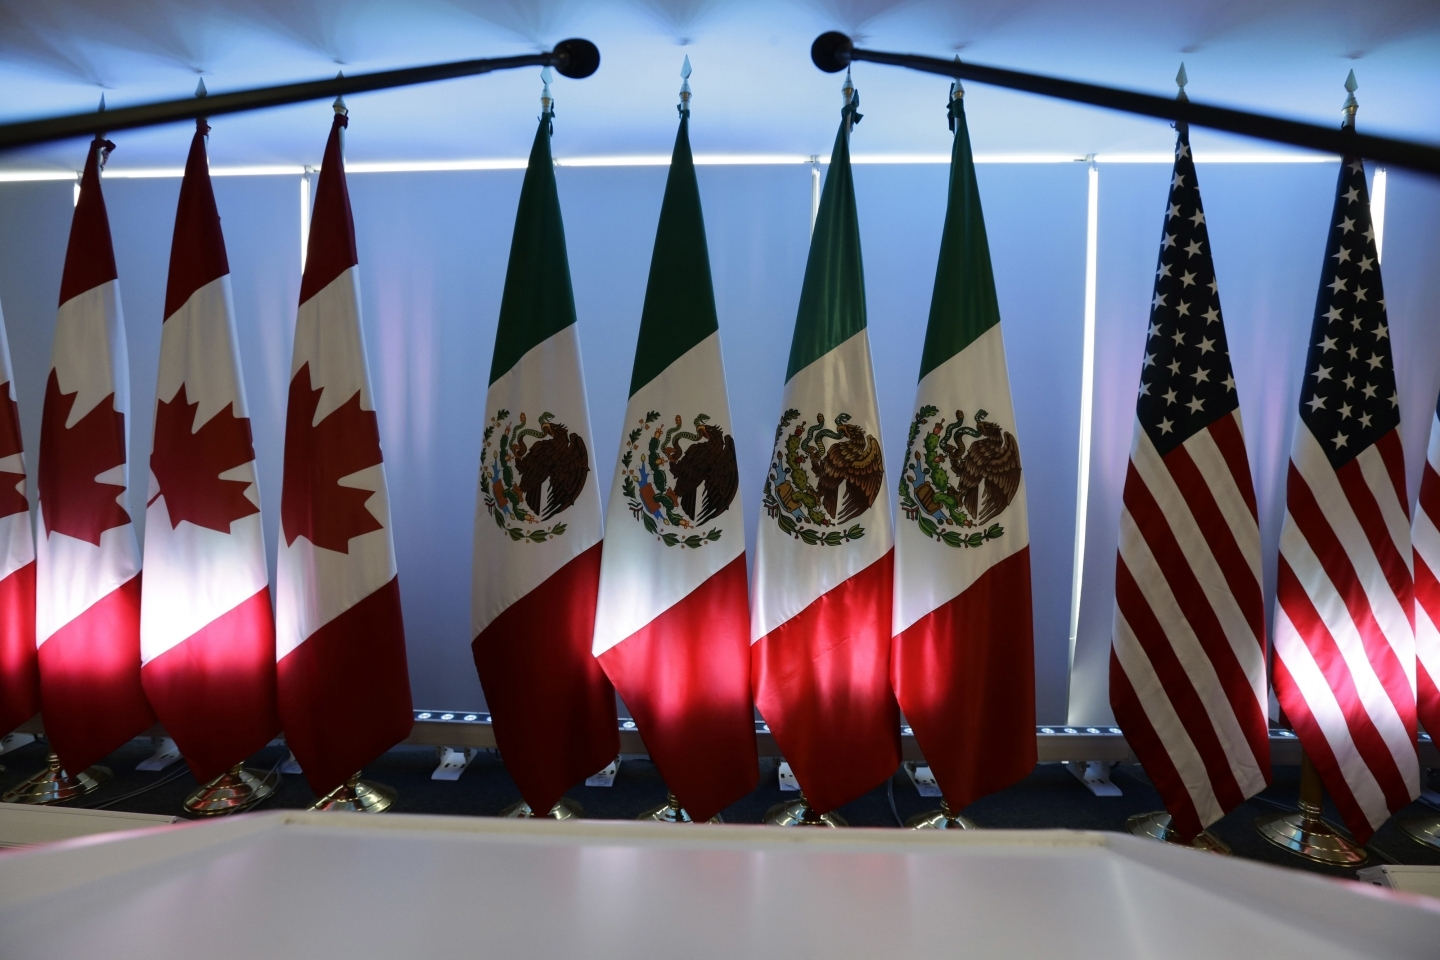 National flags representing Canada, Mexico, and the US are lit by stage lights at the NAFTA renegotiations in Mexico City, Tuesday, Sept. 5, 2017. (AP Photo/Marco Ugarte)